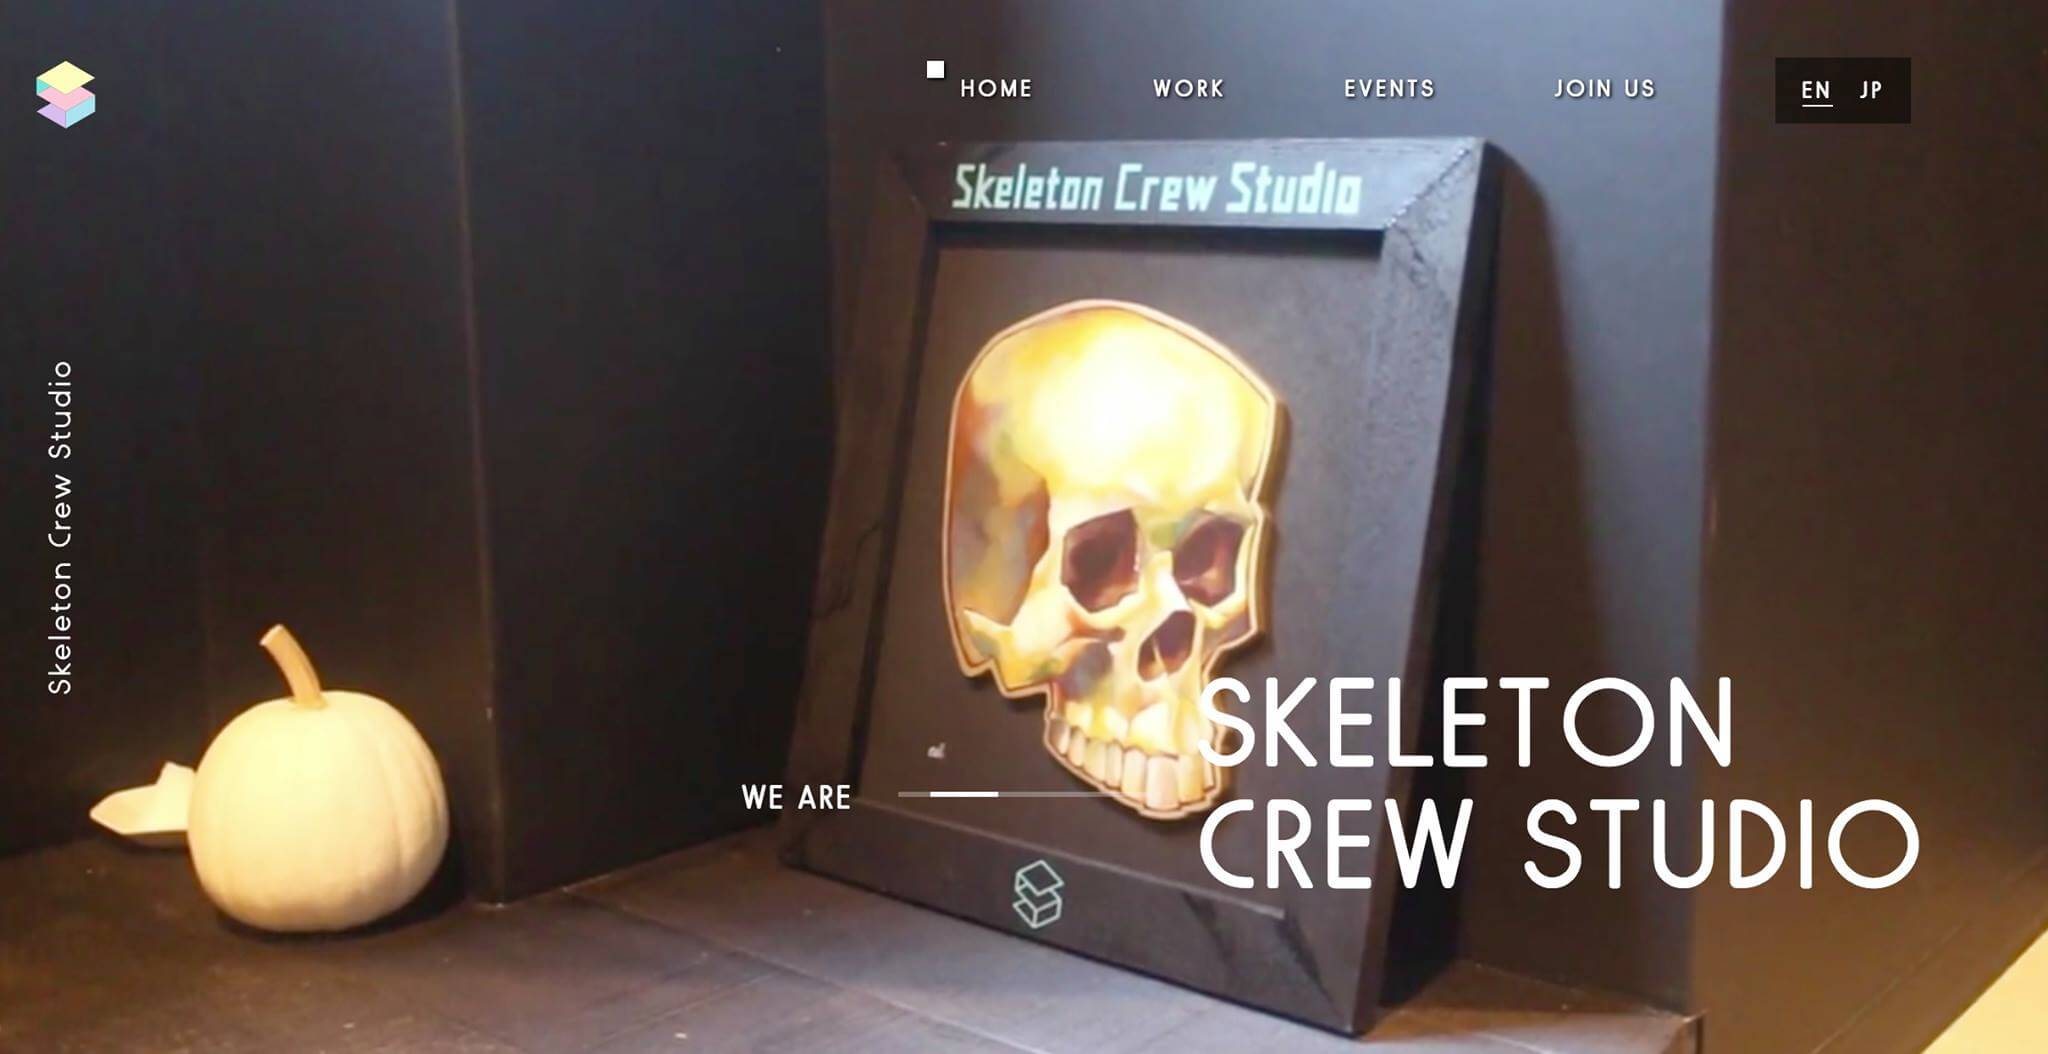 Gameで世界をHappyに!Skeleton Crew Studio様(京都)